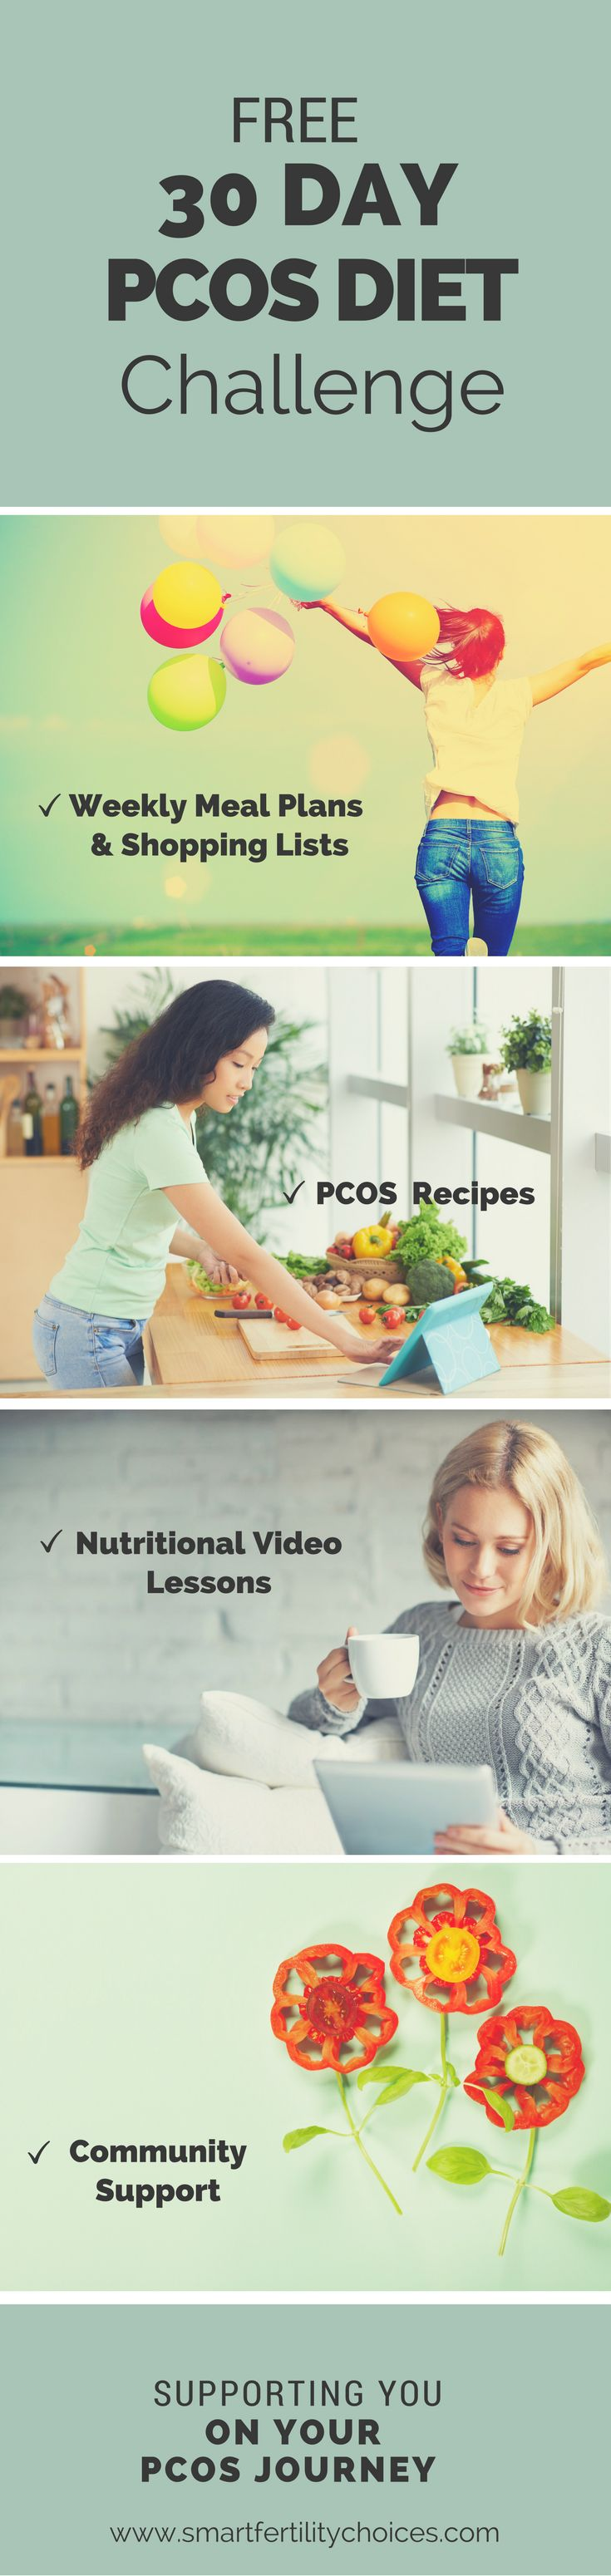 30 day Pcos diet challenge